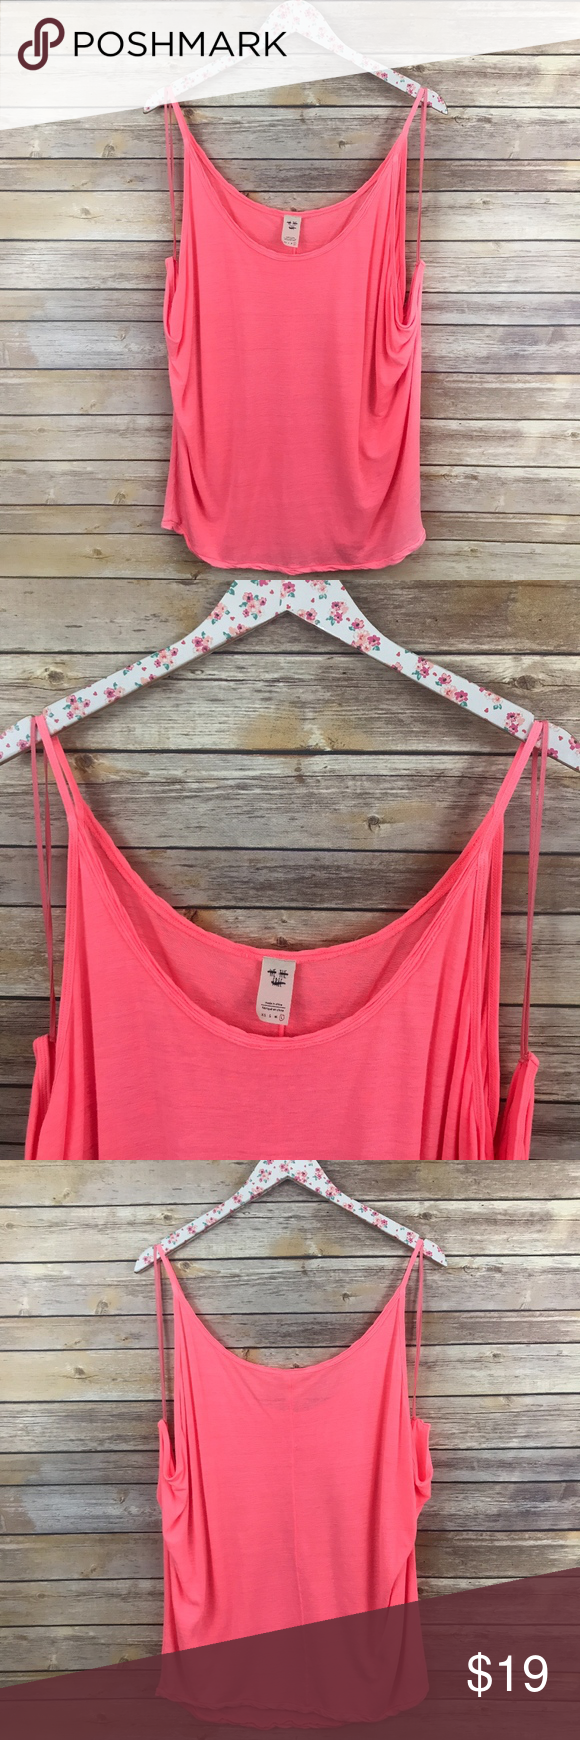 e1b39de4c4ce48 NWOT Free People Bright Pink Draped Tank Top BRAND NEW! New without tags Bright  Pink